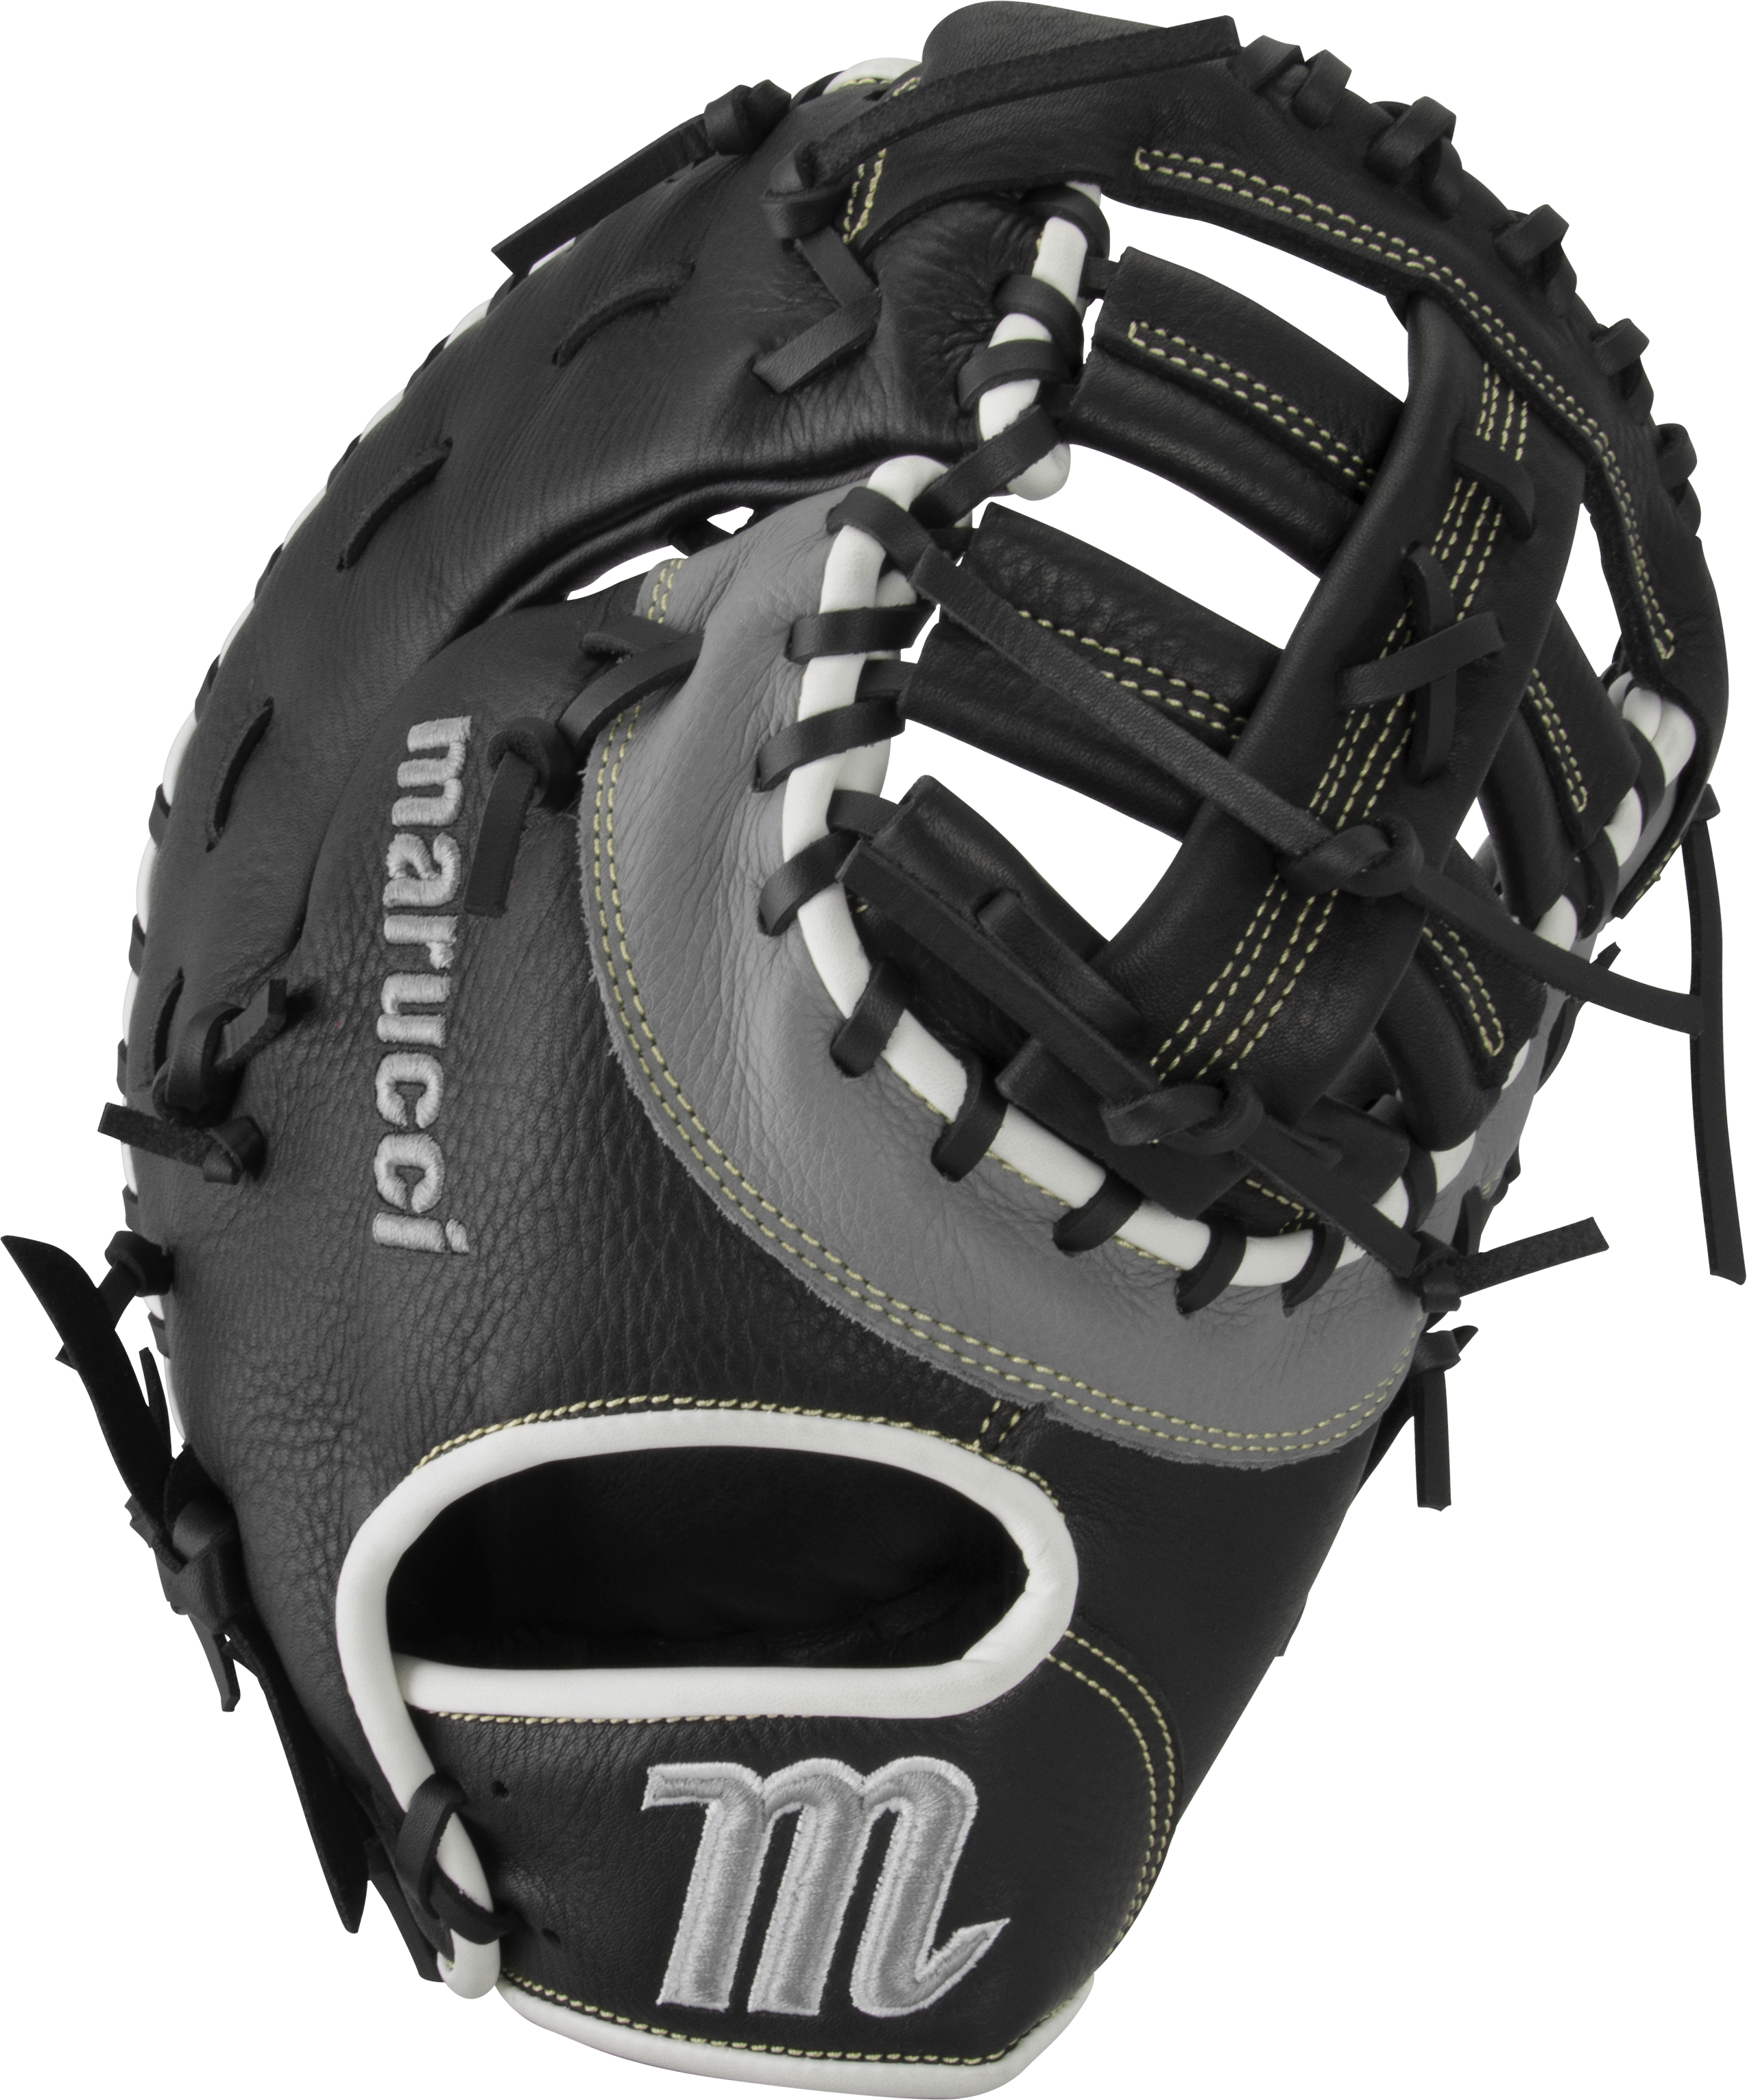 marucci-oxbow-ox3-first-base-mitt-baseball-glove-12-75-right-hand-throw MFGOX3-BKGY-RightHandThrow  849817099506 Full-grain cowhide leather shell Supple leather palm lining with added cushioning